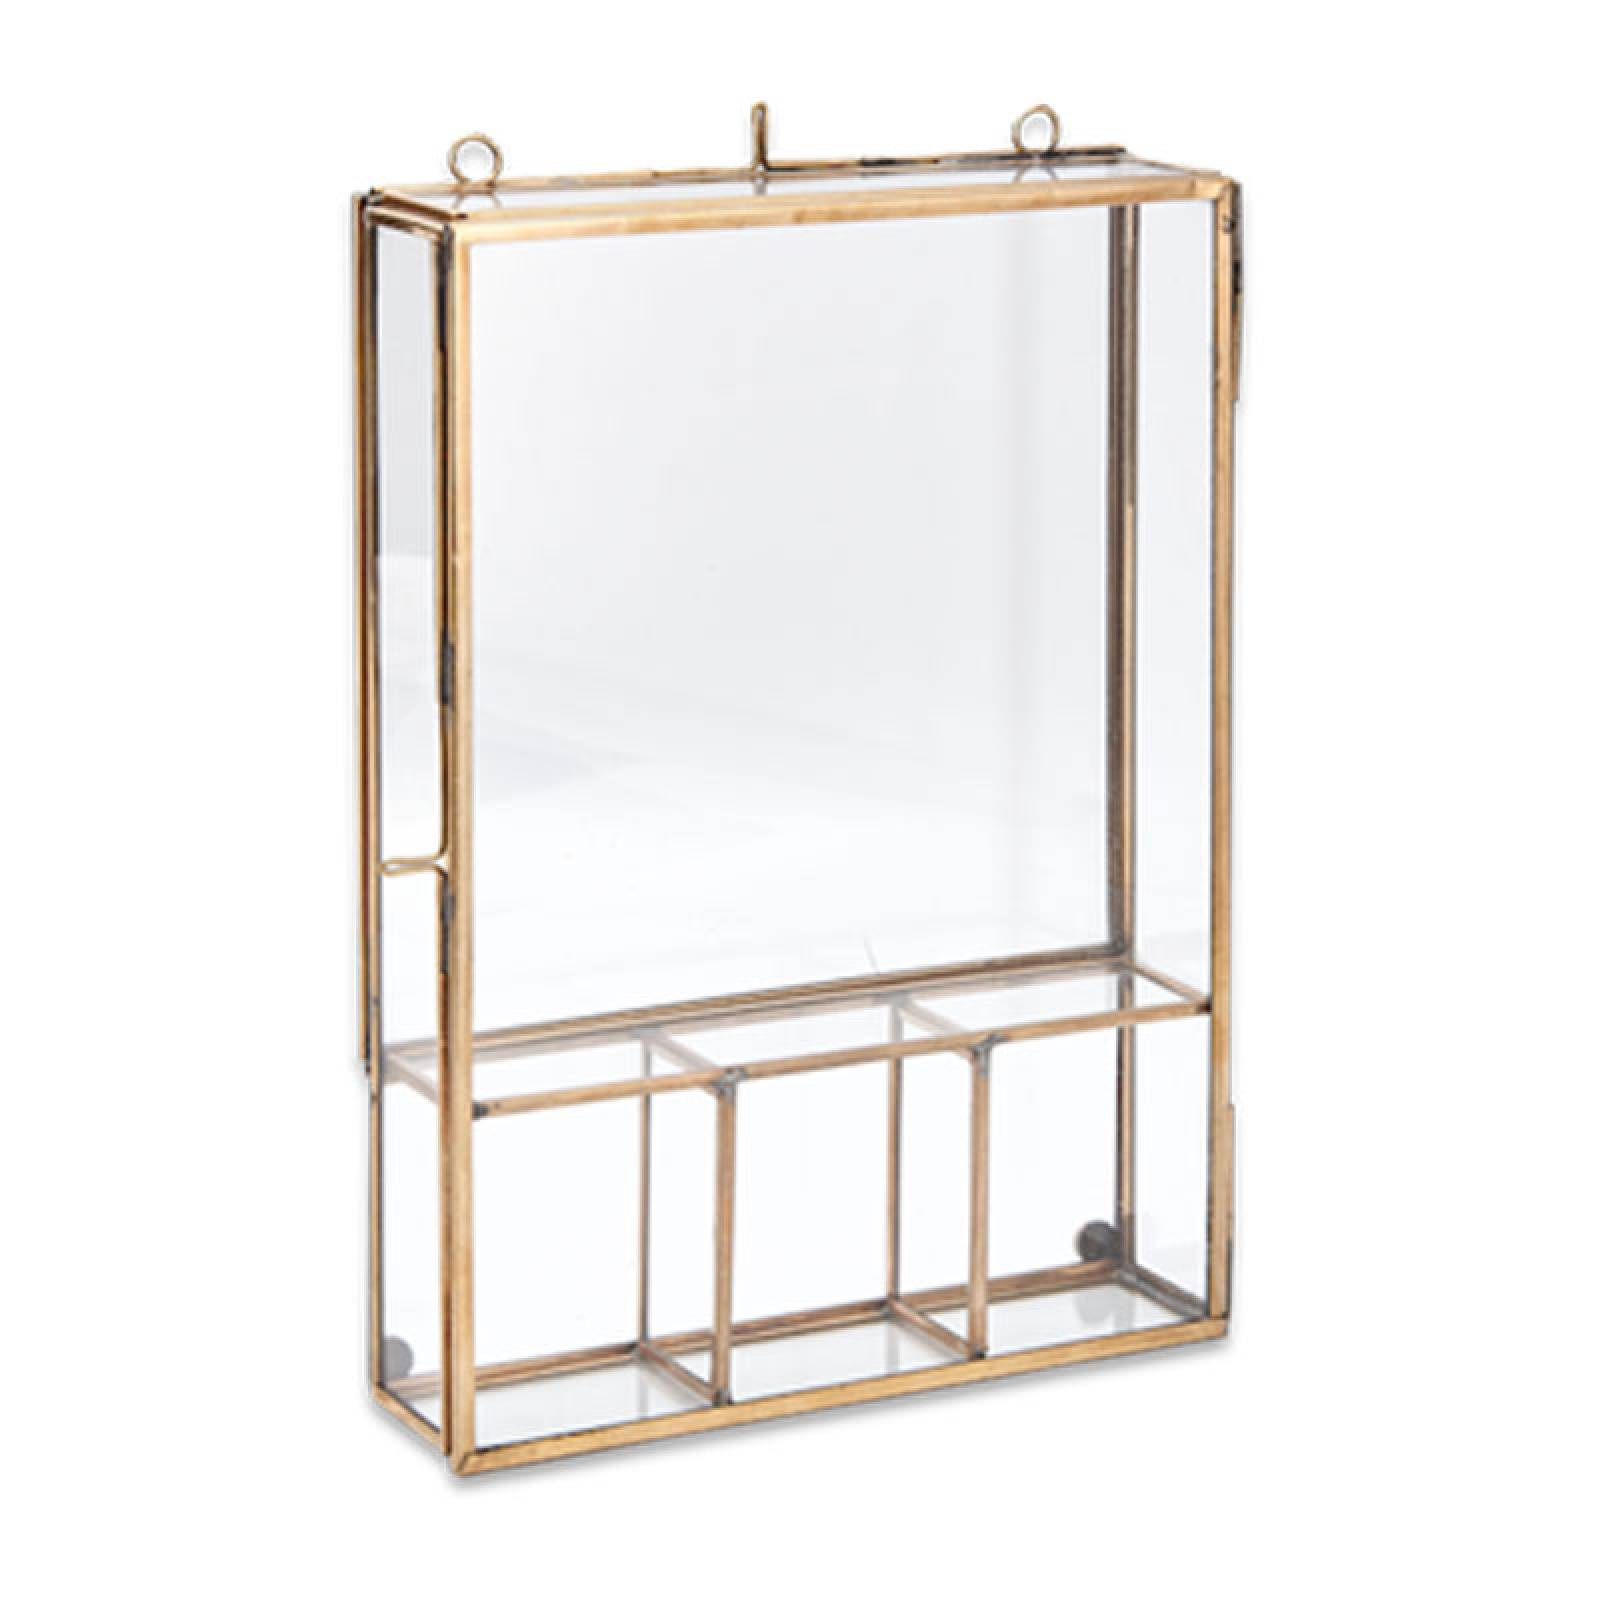 Kiko Brass And Glass Wall Mounting Photo Box